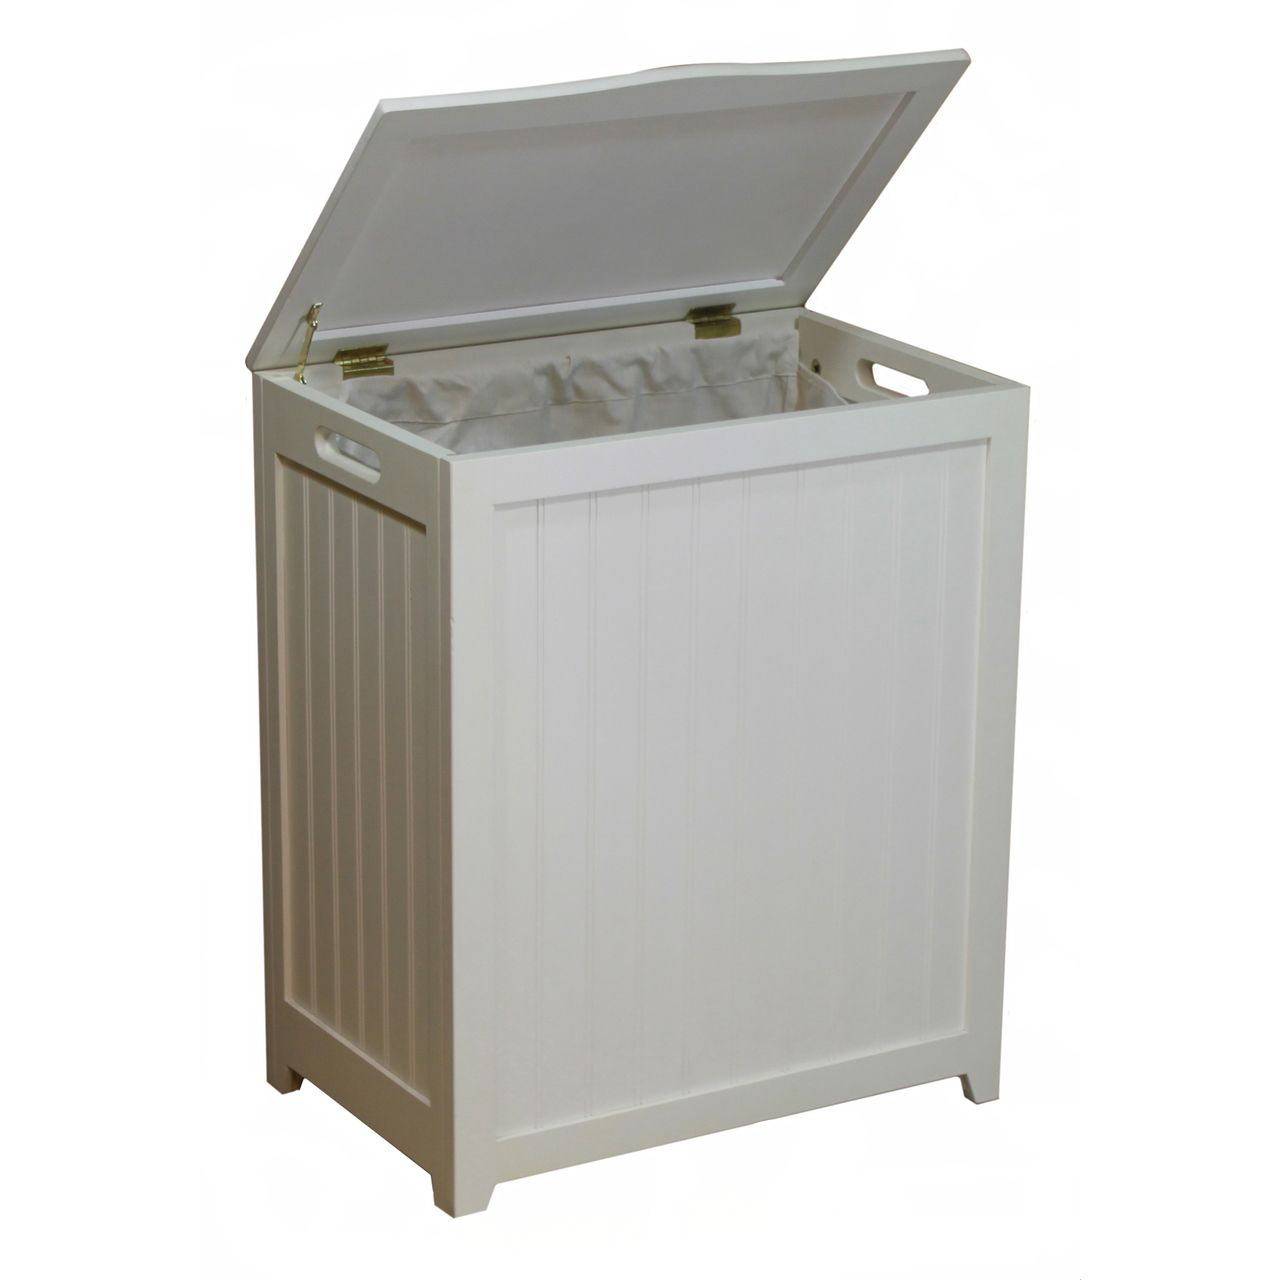 Oceanstar White Finished Rectangular Laundry Wood Hamper Wood Hamper Wood Laundry Hamper Laundry Hamper